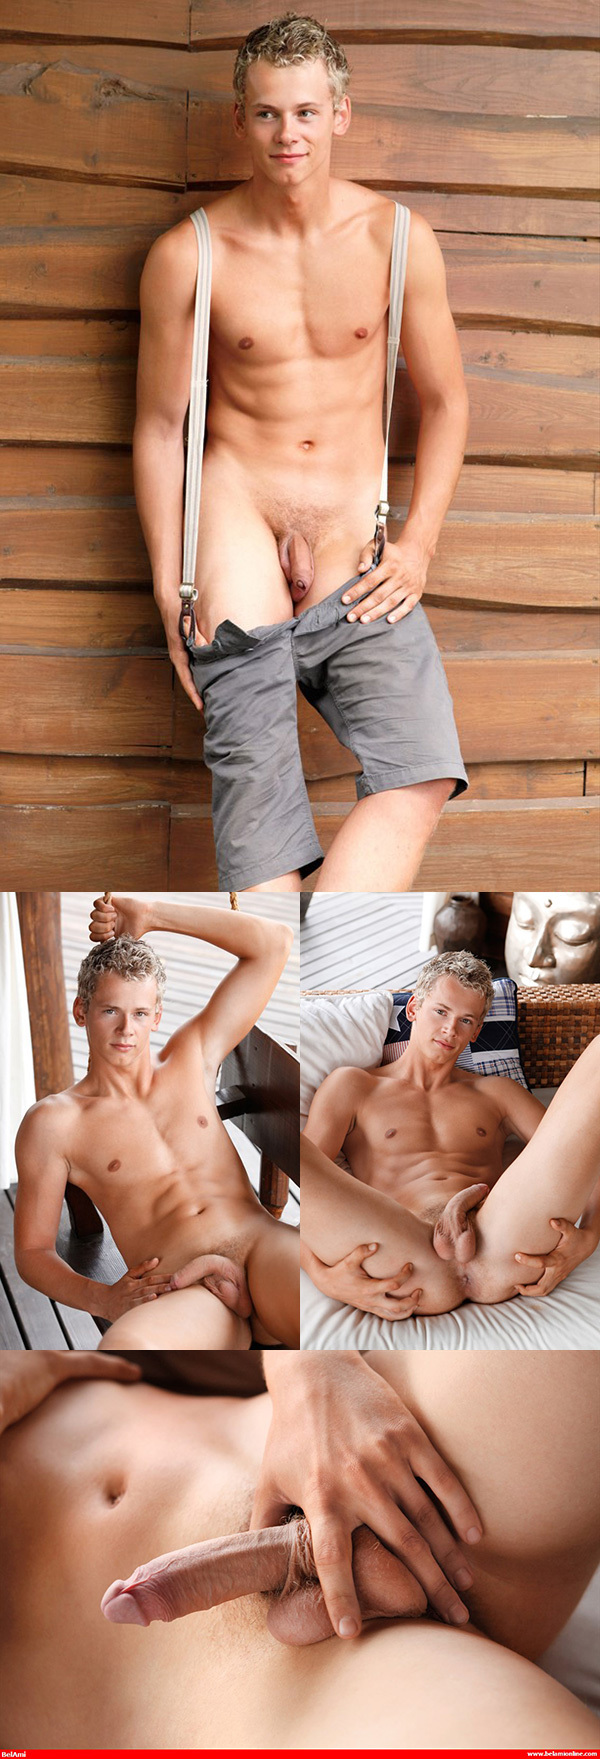 Cute Blond Jerome Exupery at Bel Ami